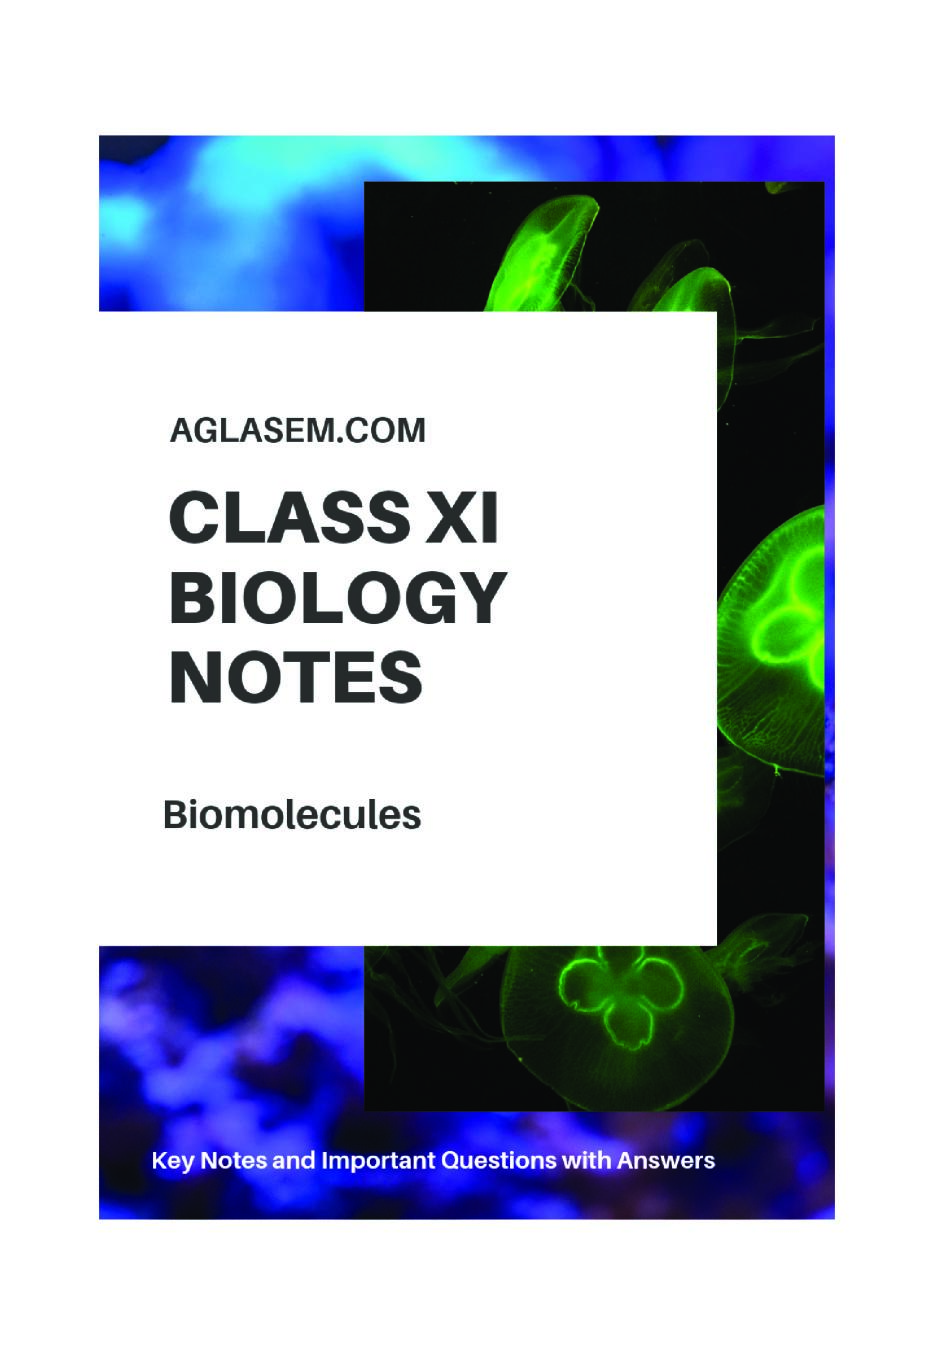 Class 11 Biology Notes for Biomolecules